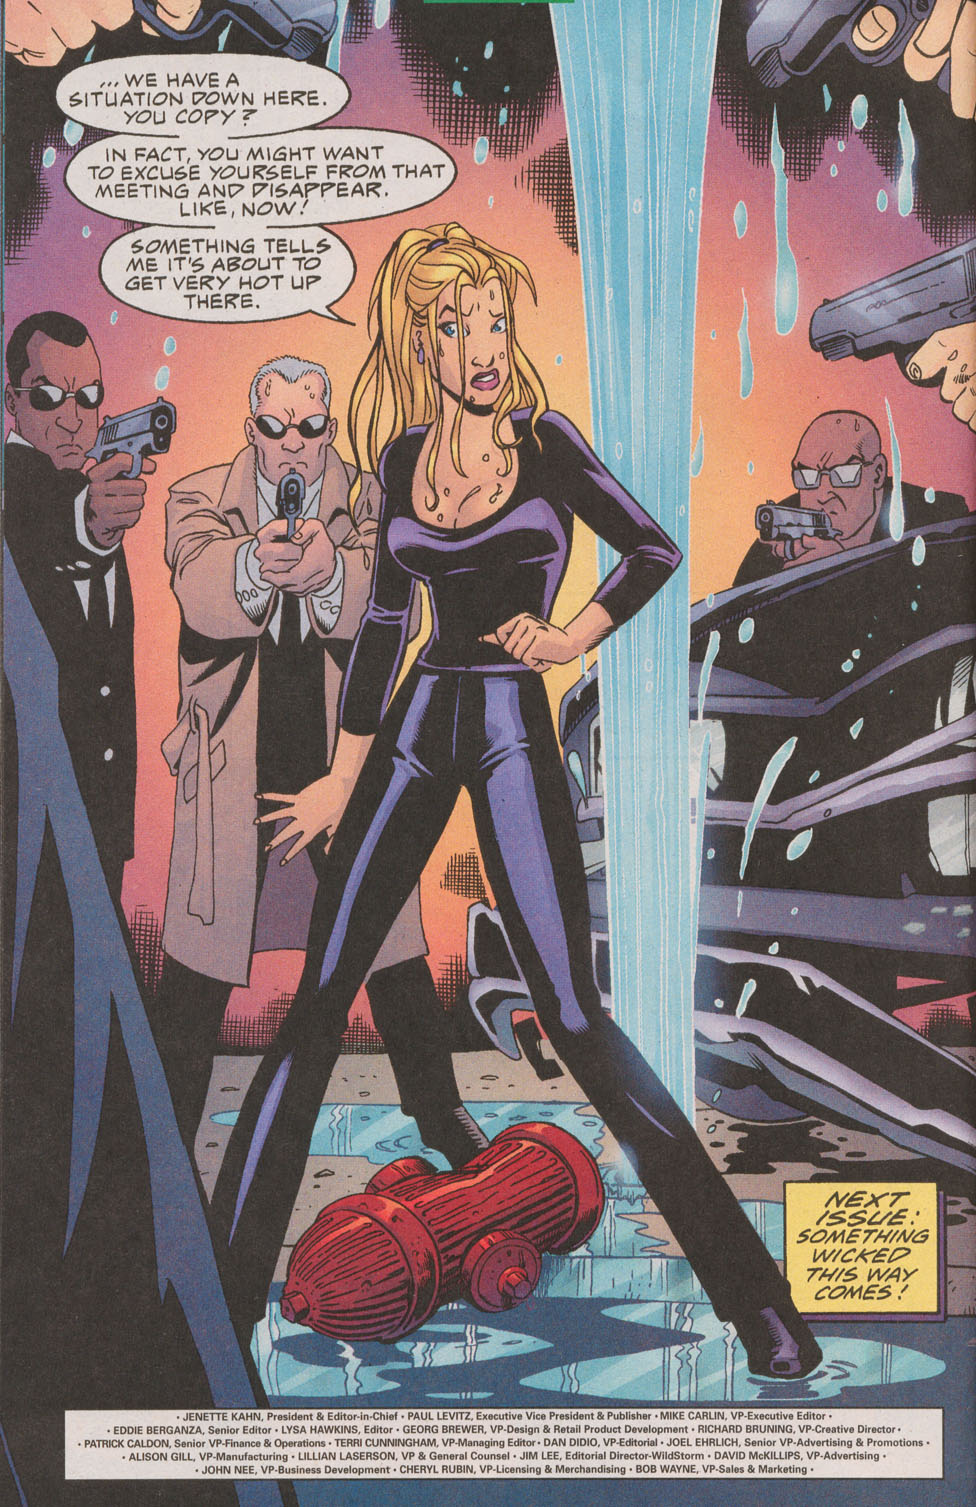 047 22 BlackCanary.jpg